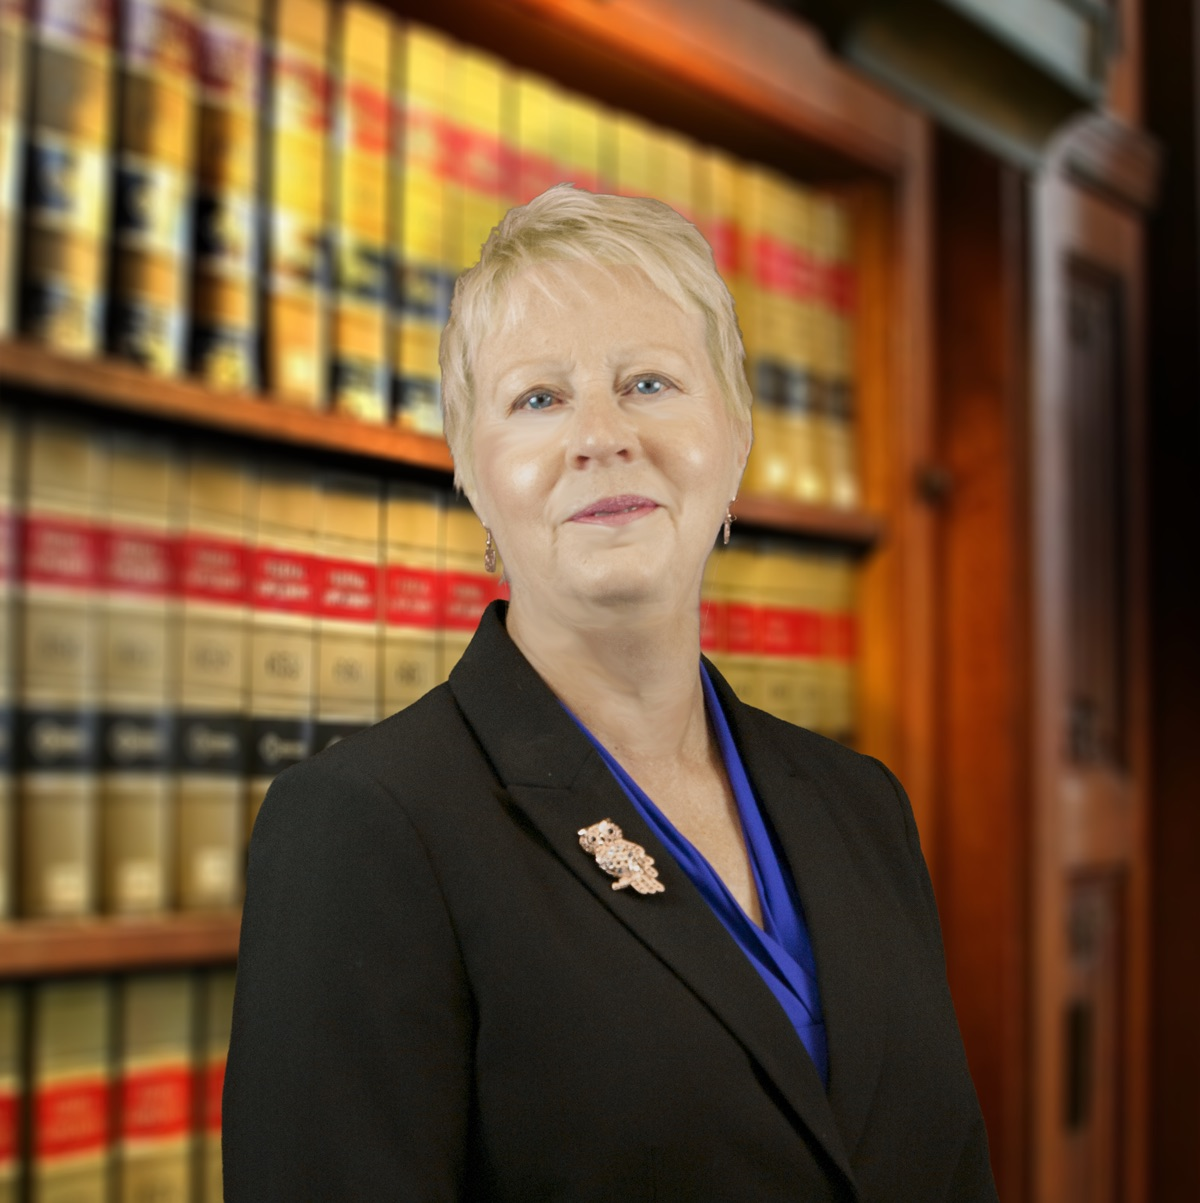 St Cloud Attorney Kay Snyder